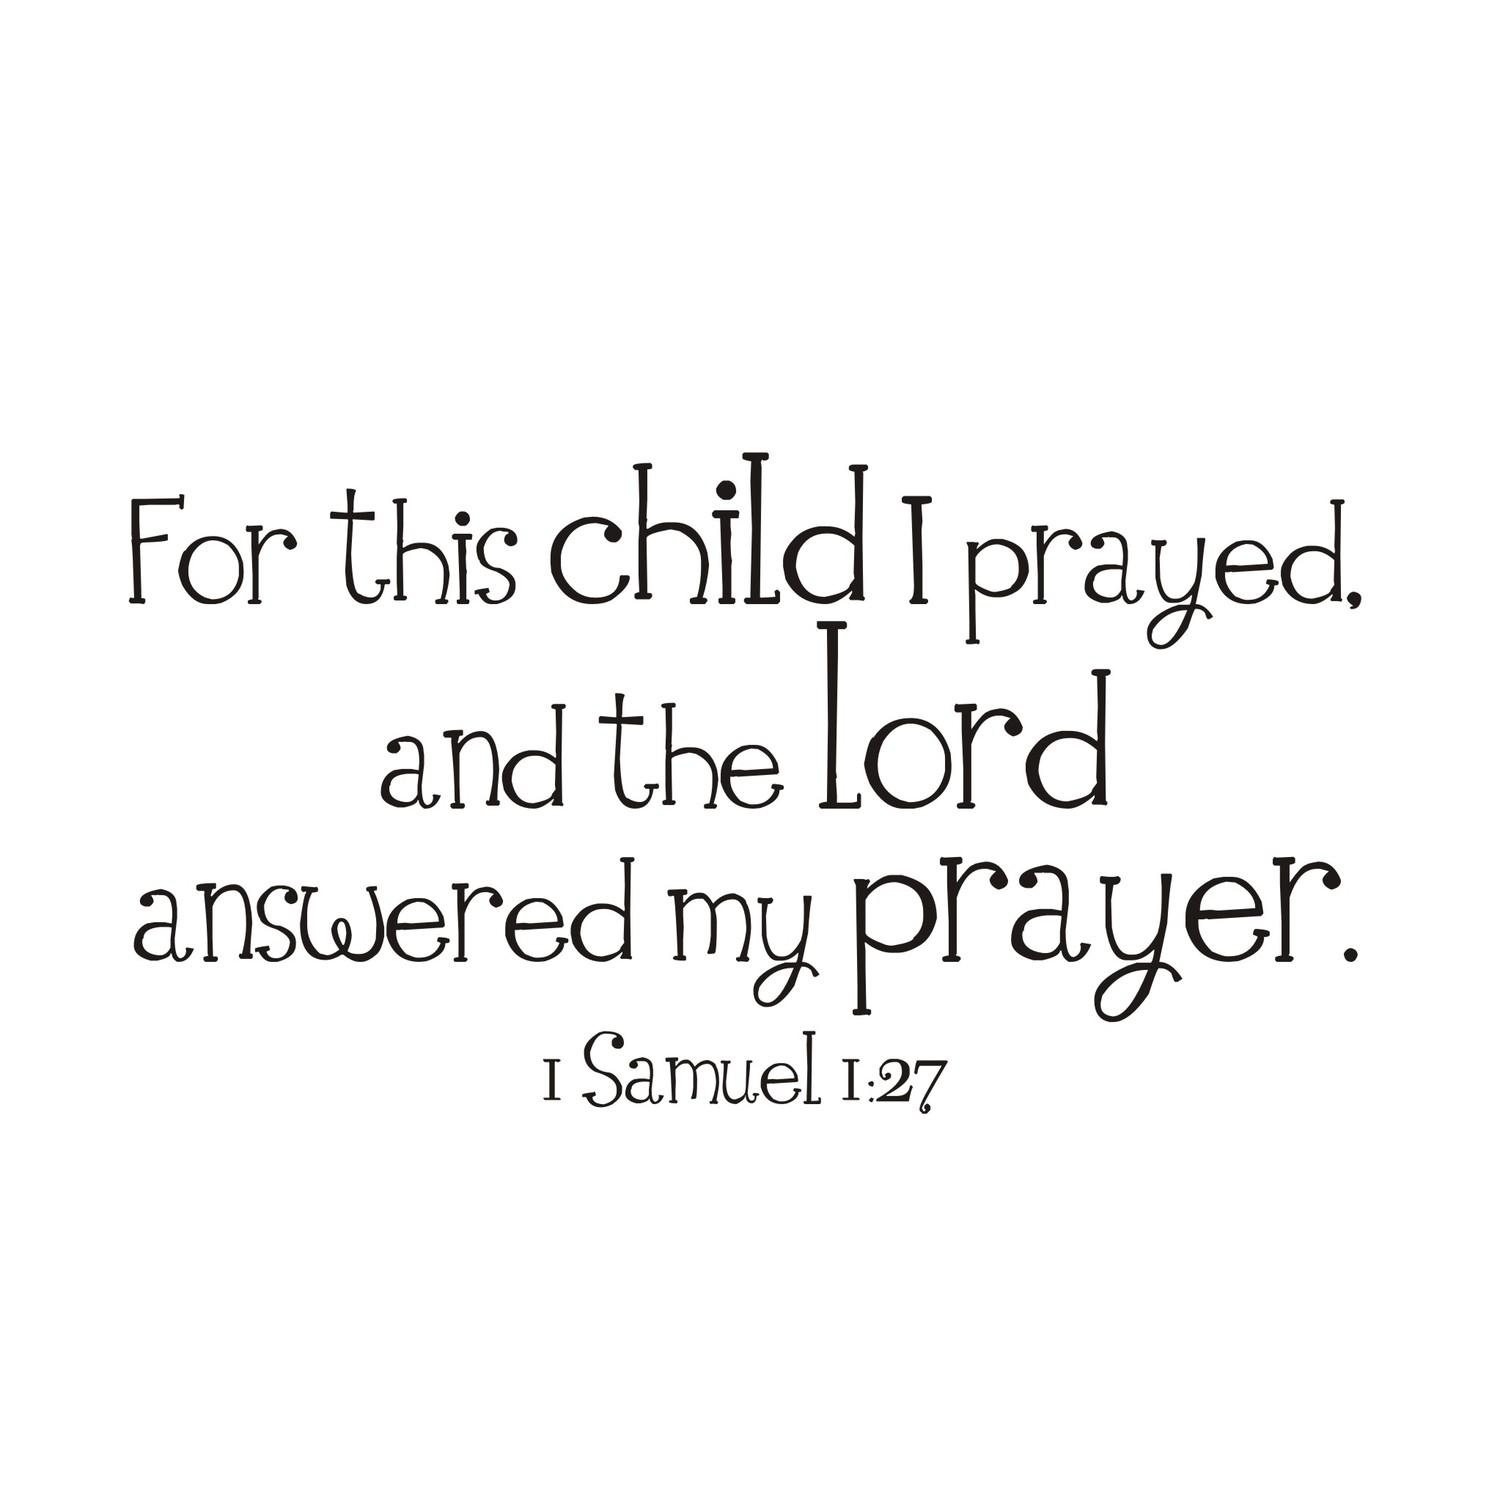 For This Child I Prayed 1 Samuel 1:27 Vinyl Wall Decal Throughout For This Child I Prayed Wall Art (View 4 of 20)